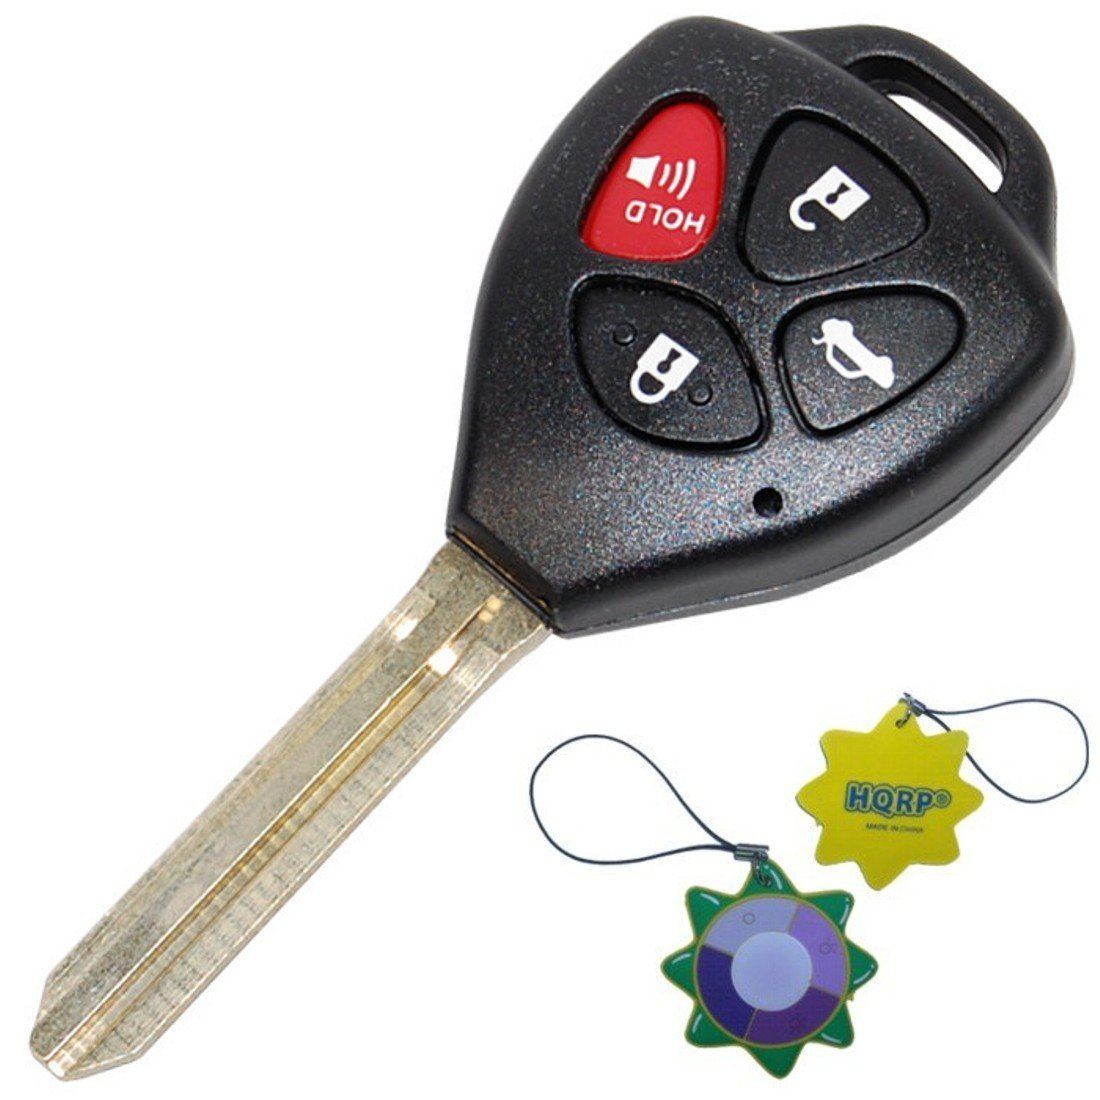 HQRP Ignition Key Keyless Entry Remote Head Transmitter w  4 Buttons for Avalon 07-10   Toyota Camry 07-11  ... by HQRP